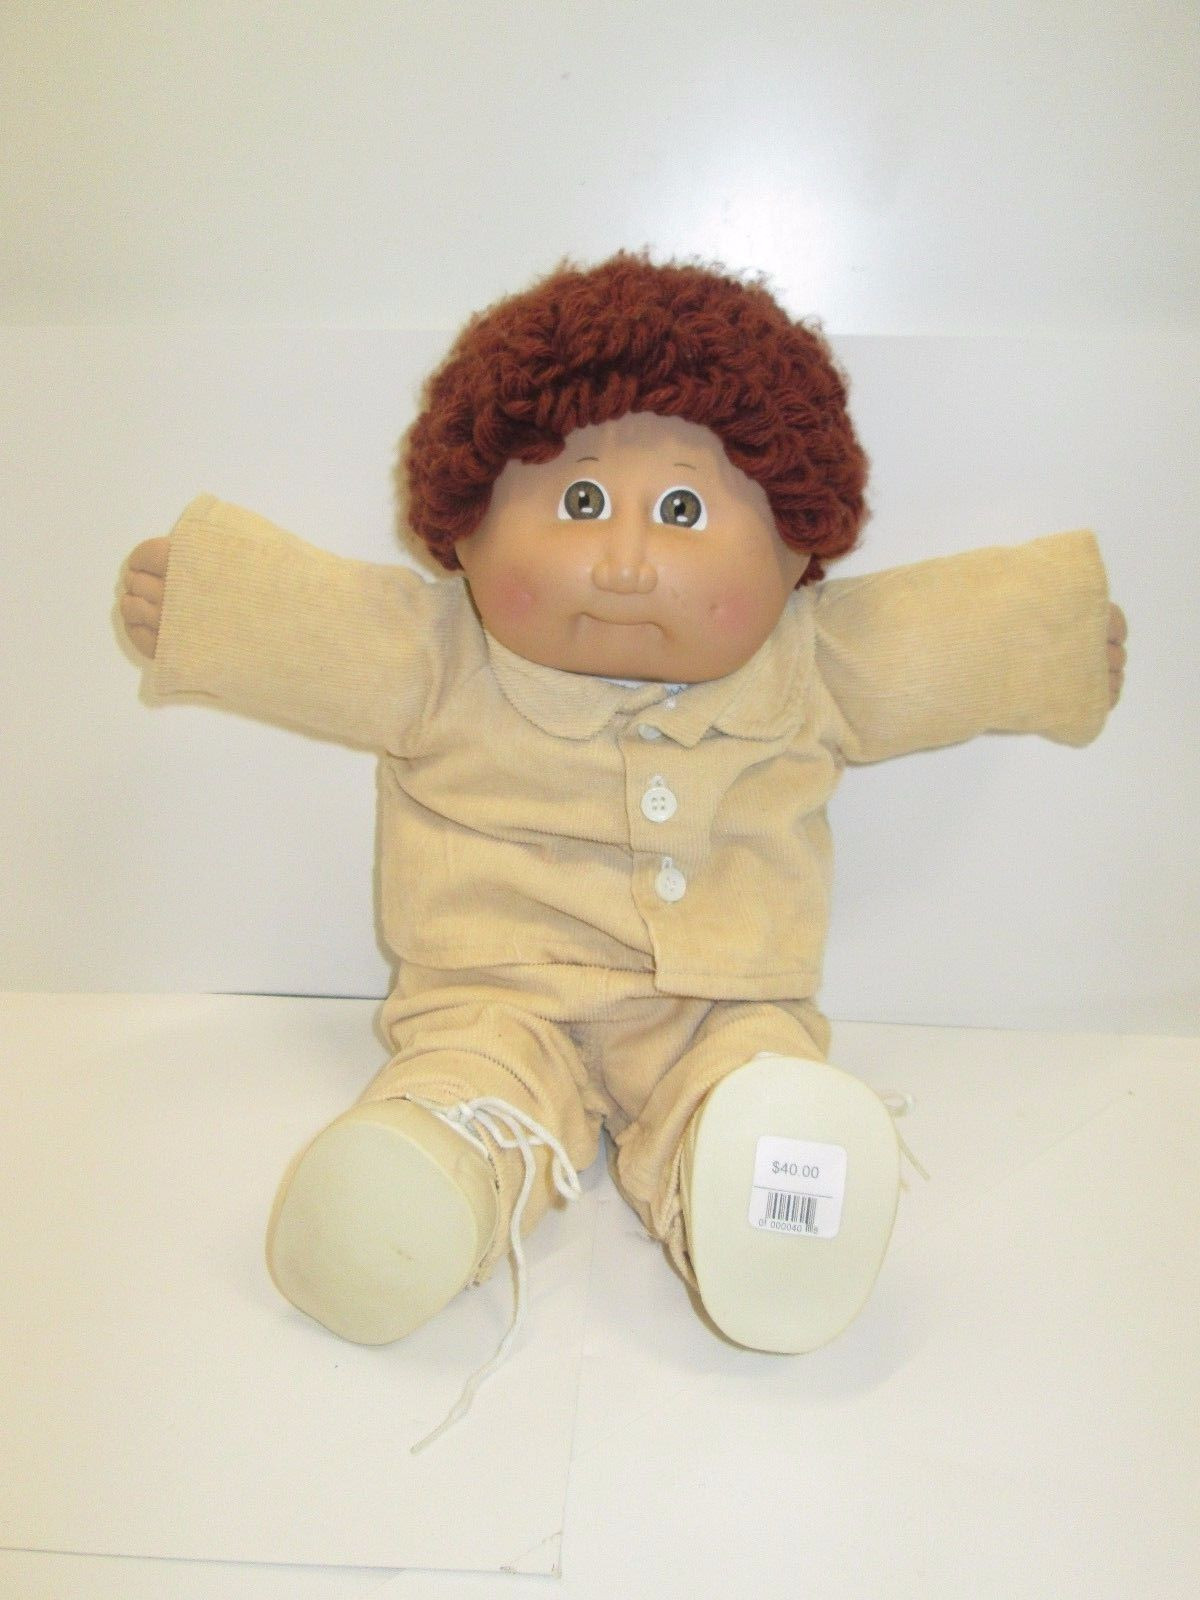 Vintage Cabbage Patch Dolls Best Of 17 Vintage Cabbage Patch Doll Brown Hair Eyes 1978 1982 Of Vintage Cabbage Patch Dolls Fresh Cabbage Patch Kids Vintage Doll Limited Edition 30th